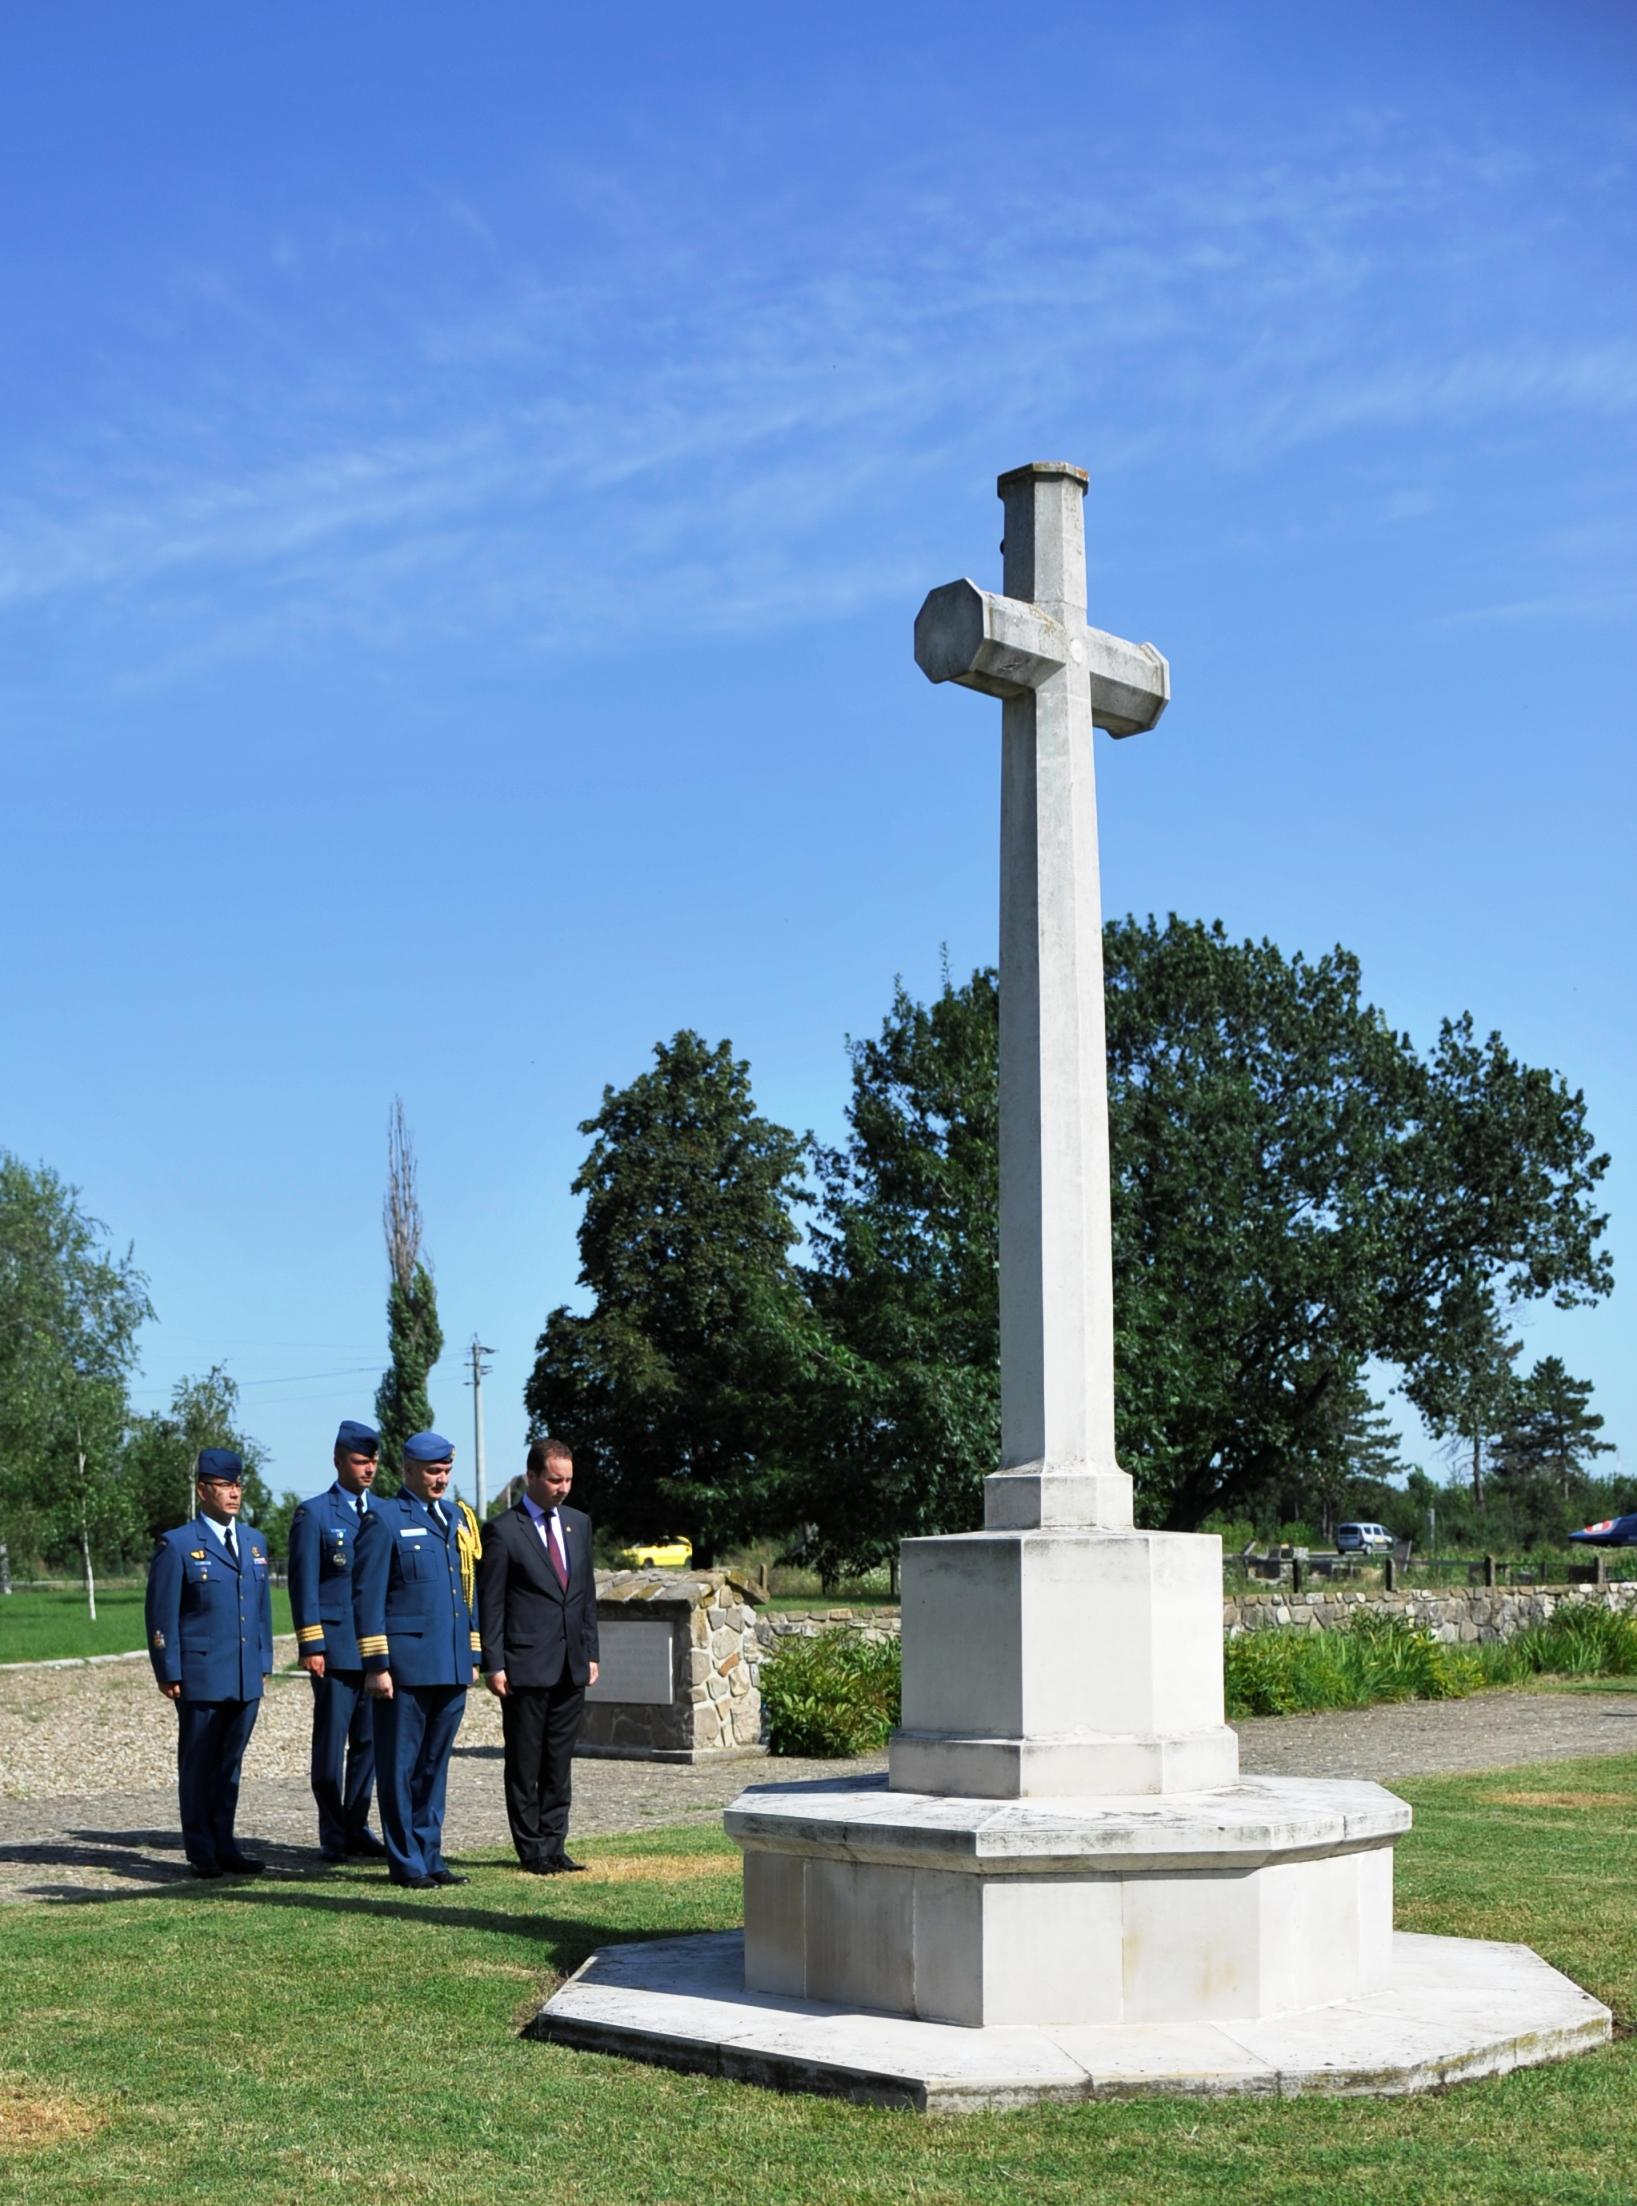 Senior members of the Canadian Air Task Force Romania, the Canadian Defence Attaché and the Chargé d'Affaires of the Canadian Embassy in Bucharest observe a moment of silence at the Commonwealth War Cemetery in Bucharest on August 1, 2014 in remembrance of the two members of the Royal Canadian Air Force who died in Romania during the Second World War:  Warrant Officer Class I Leslie Frederick Dutton and Flight Sergeant Reginald Thomas White Marsh. PHOTO: Captain Christopher Daniel